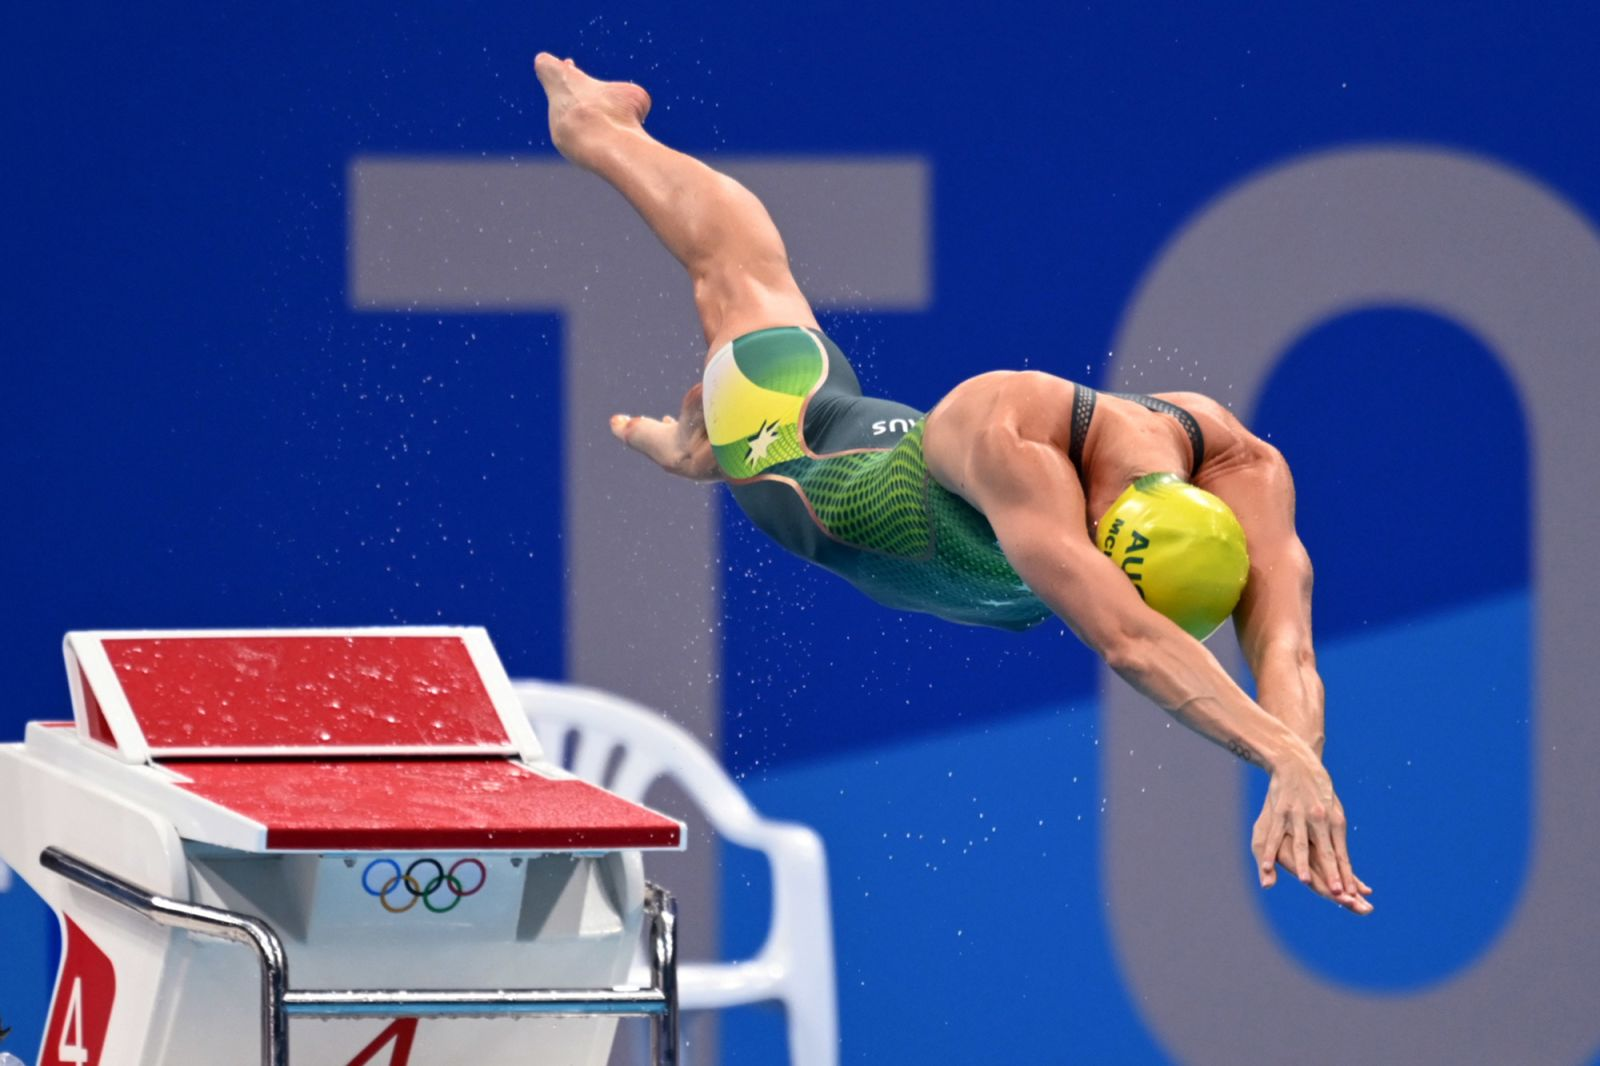 Australian swimmer Emma McKeon dives into the pool at the start of the 50-meter freestyle final on August 1.She won her third gold in Tokyoand set an Olympic record time of 23.81 seconds.